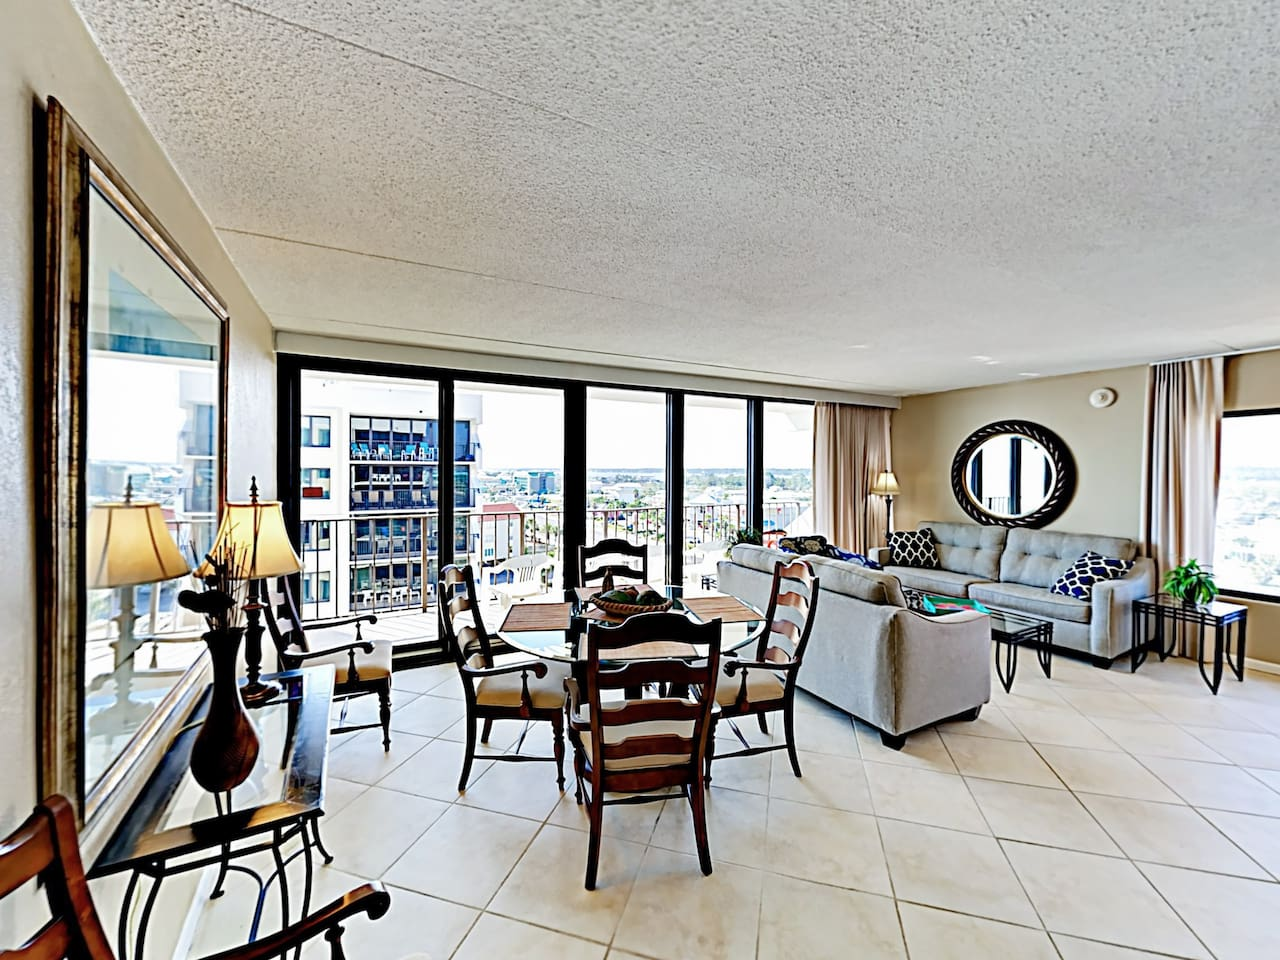 Welcome to Gulf Shores! This condo is professionally managed by TurnKey Vacation Rentals.